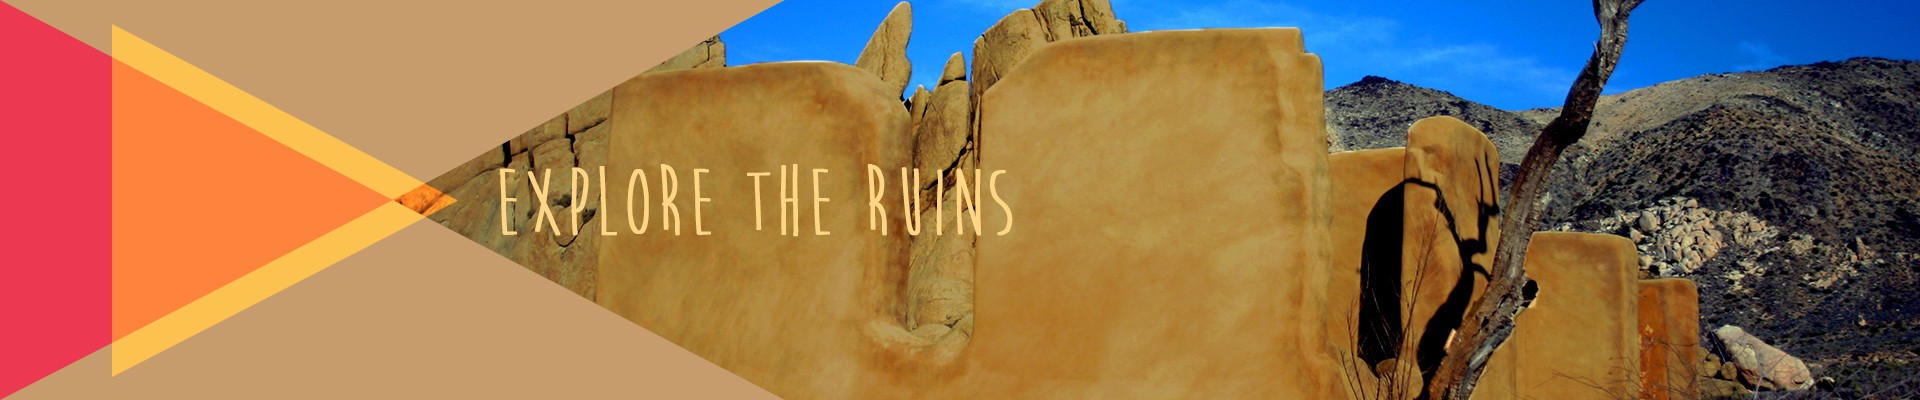 Explore the ruins - Joshua Tree National Park